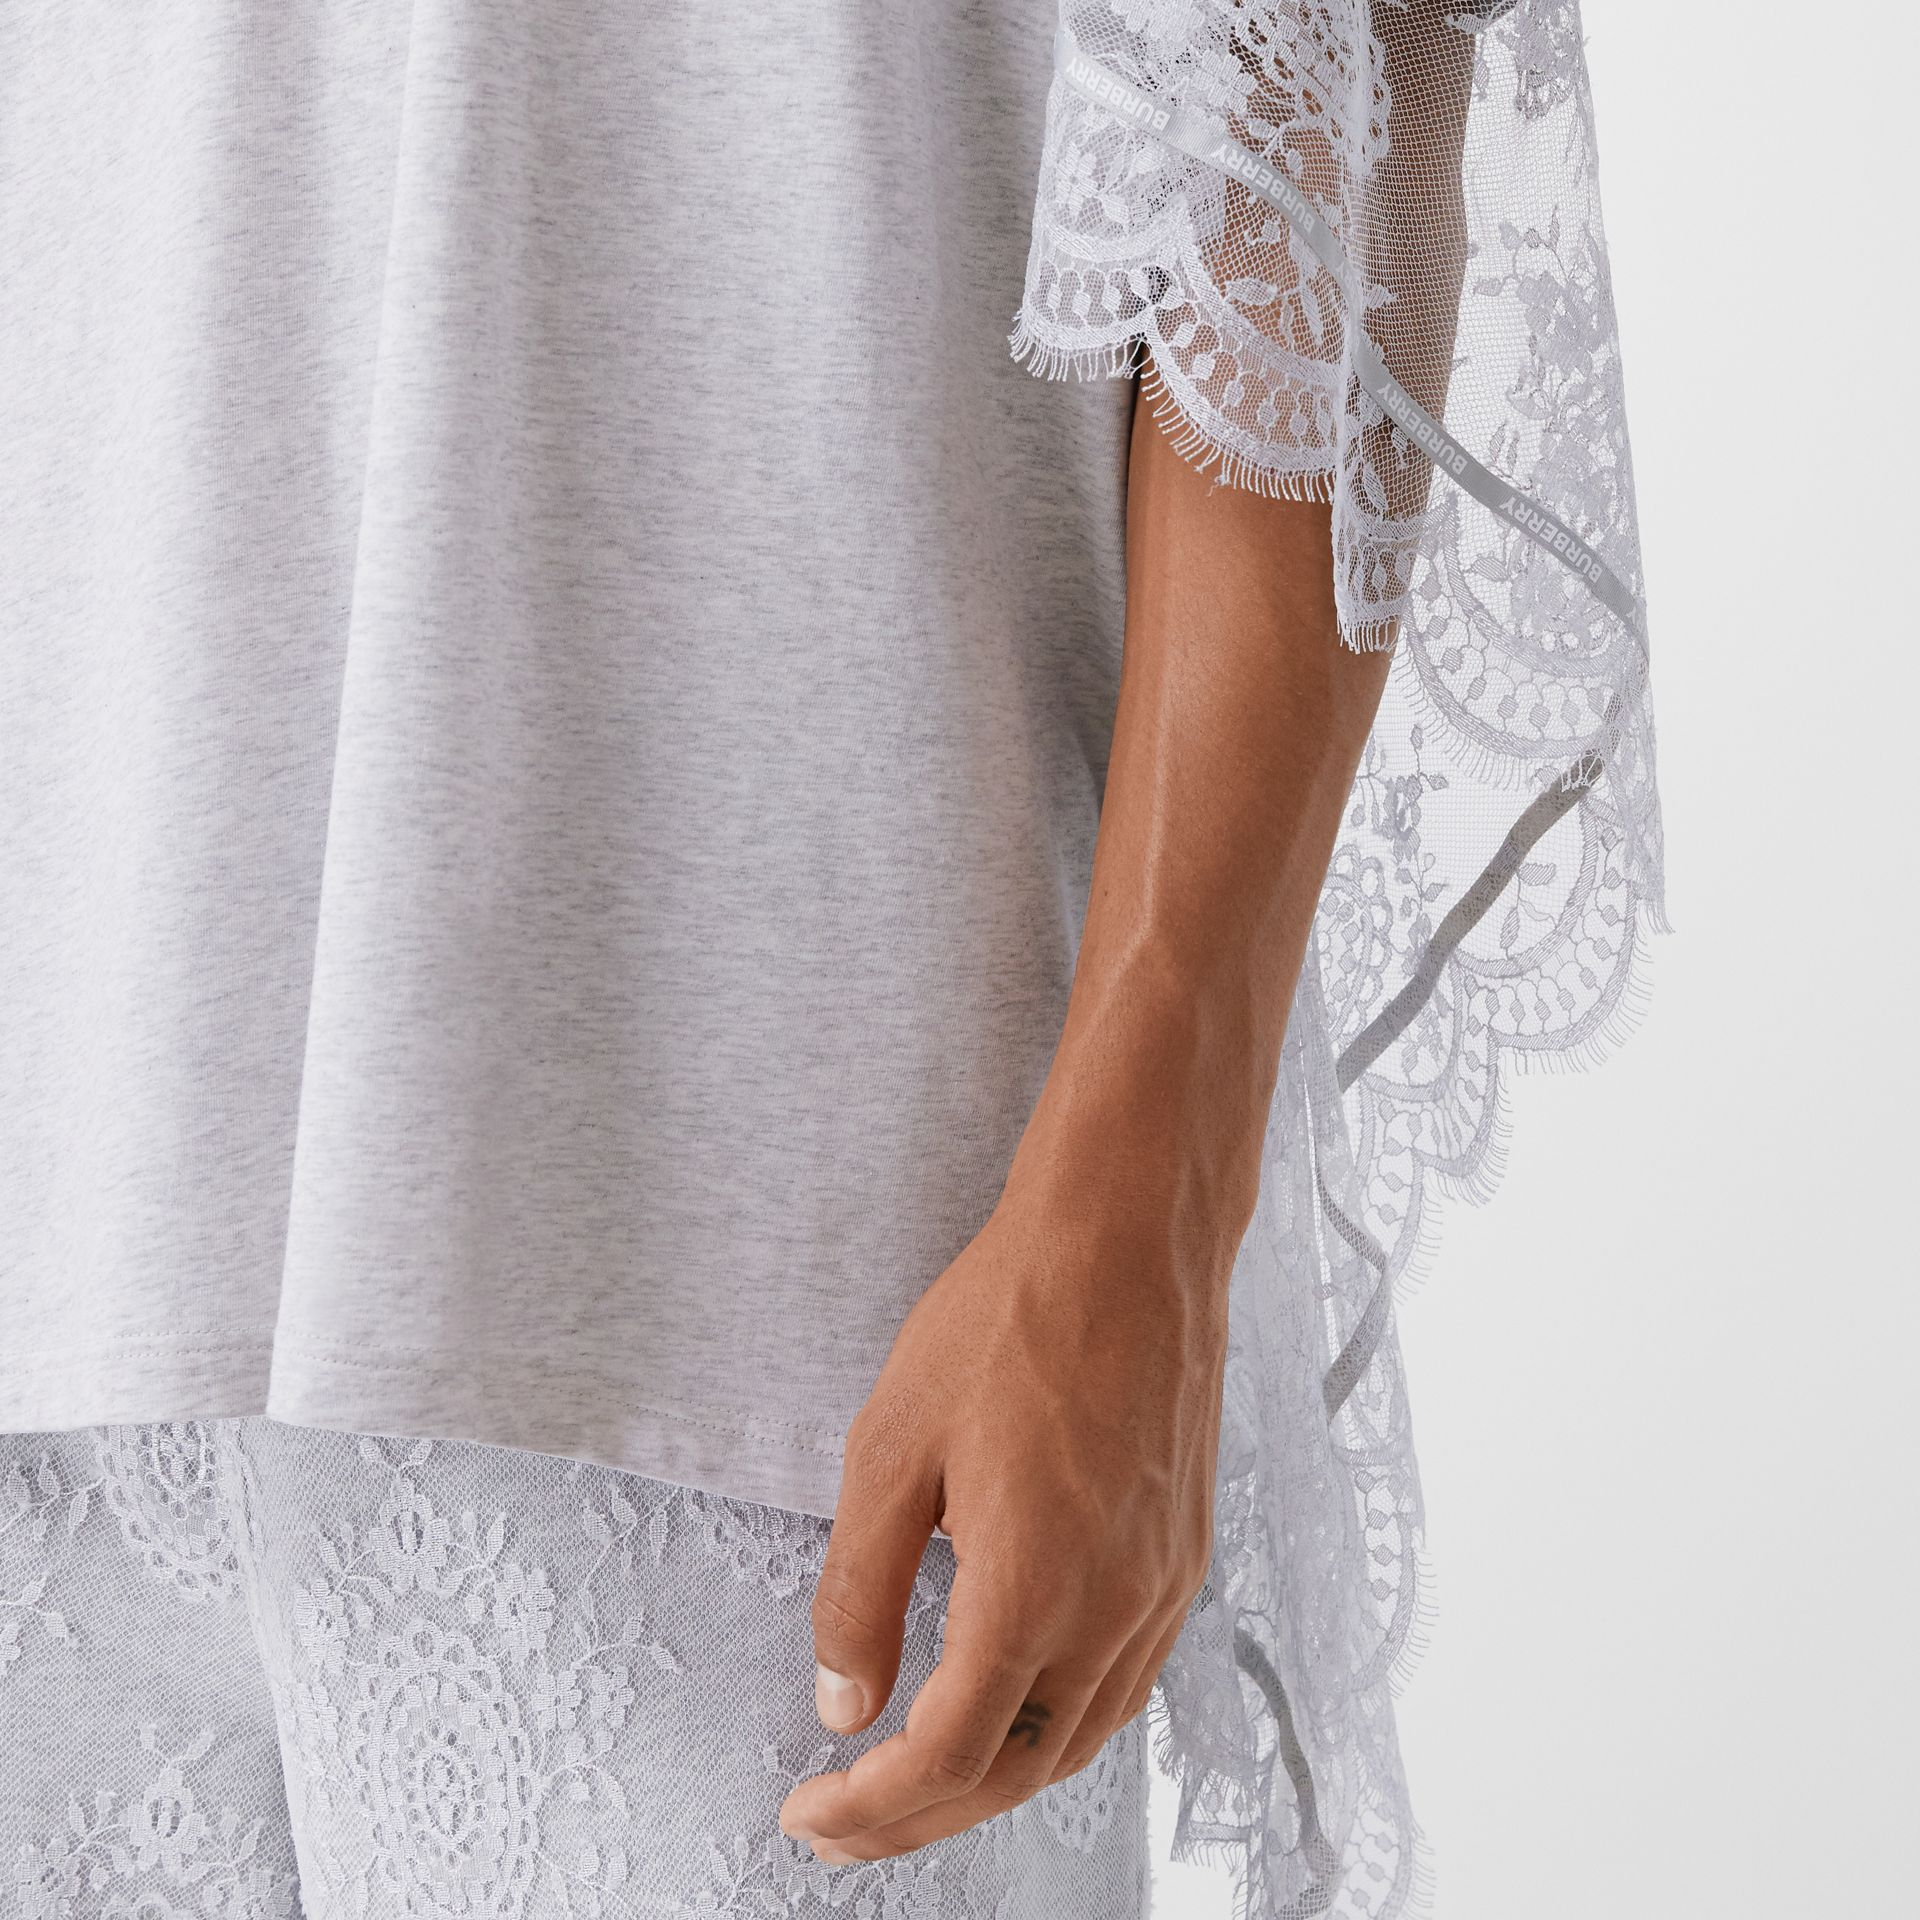 Chantilly Lace Cape Detail Cotton Oversized T-shirt in Porcelain | Burberry United Kingdom - gallery image 6